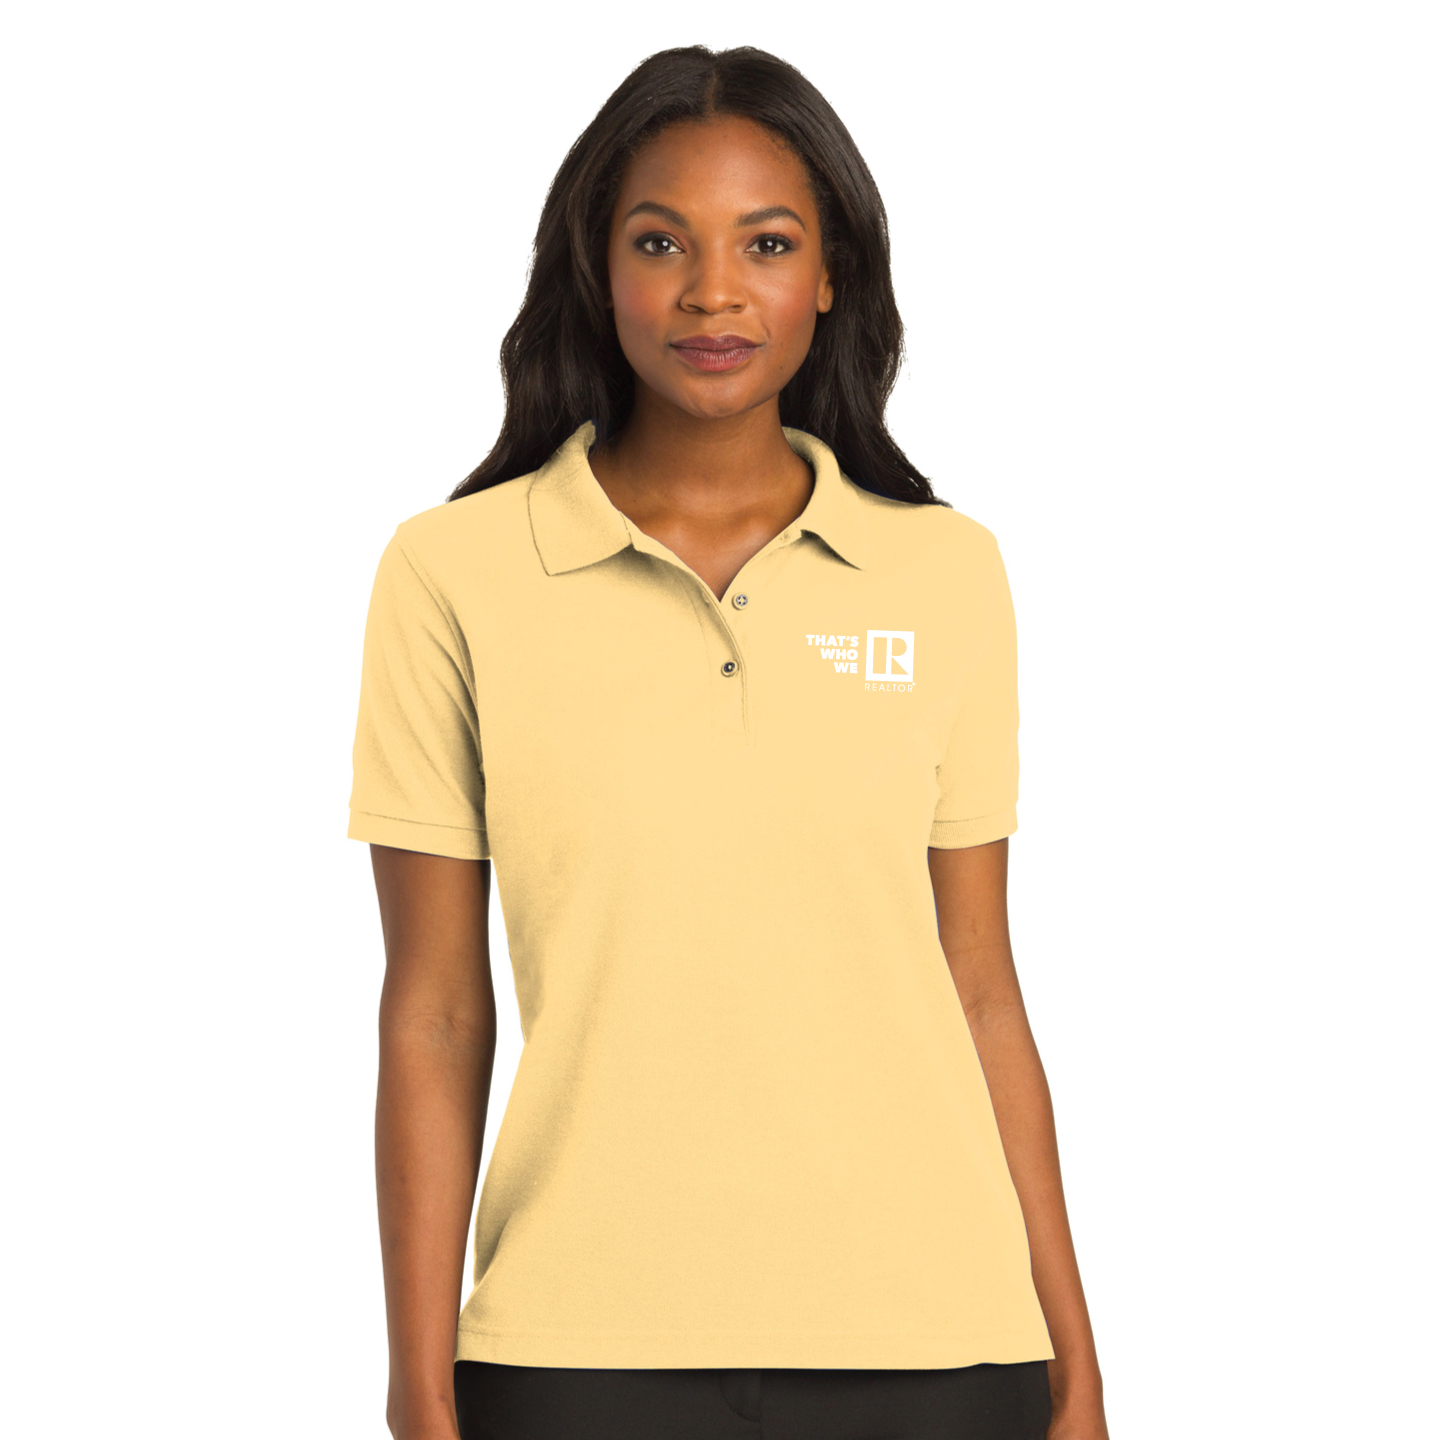 """Thats Who We R"" Ladies Pique Polo Shirt twwr,ThatsWhoWeR,Thats,TWWR,ThatWho,ThatsWho,Twwr,Thats,Whos,We,Ares,Twwr,Thats,Whos,We,Area,Golfs, Shirts, Collared, Polos, Plackets"